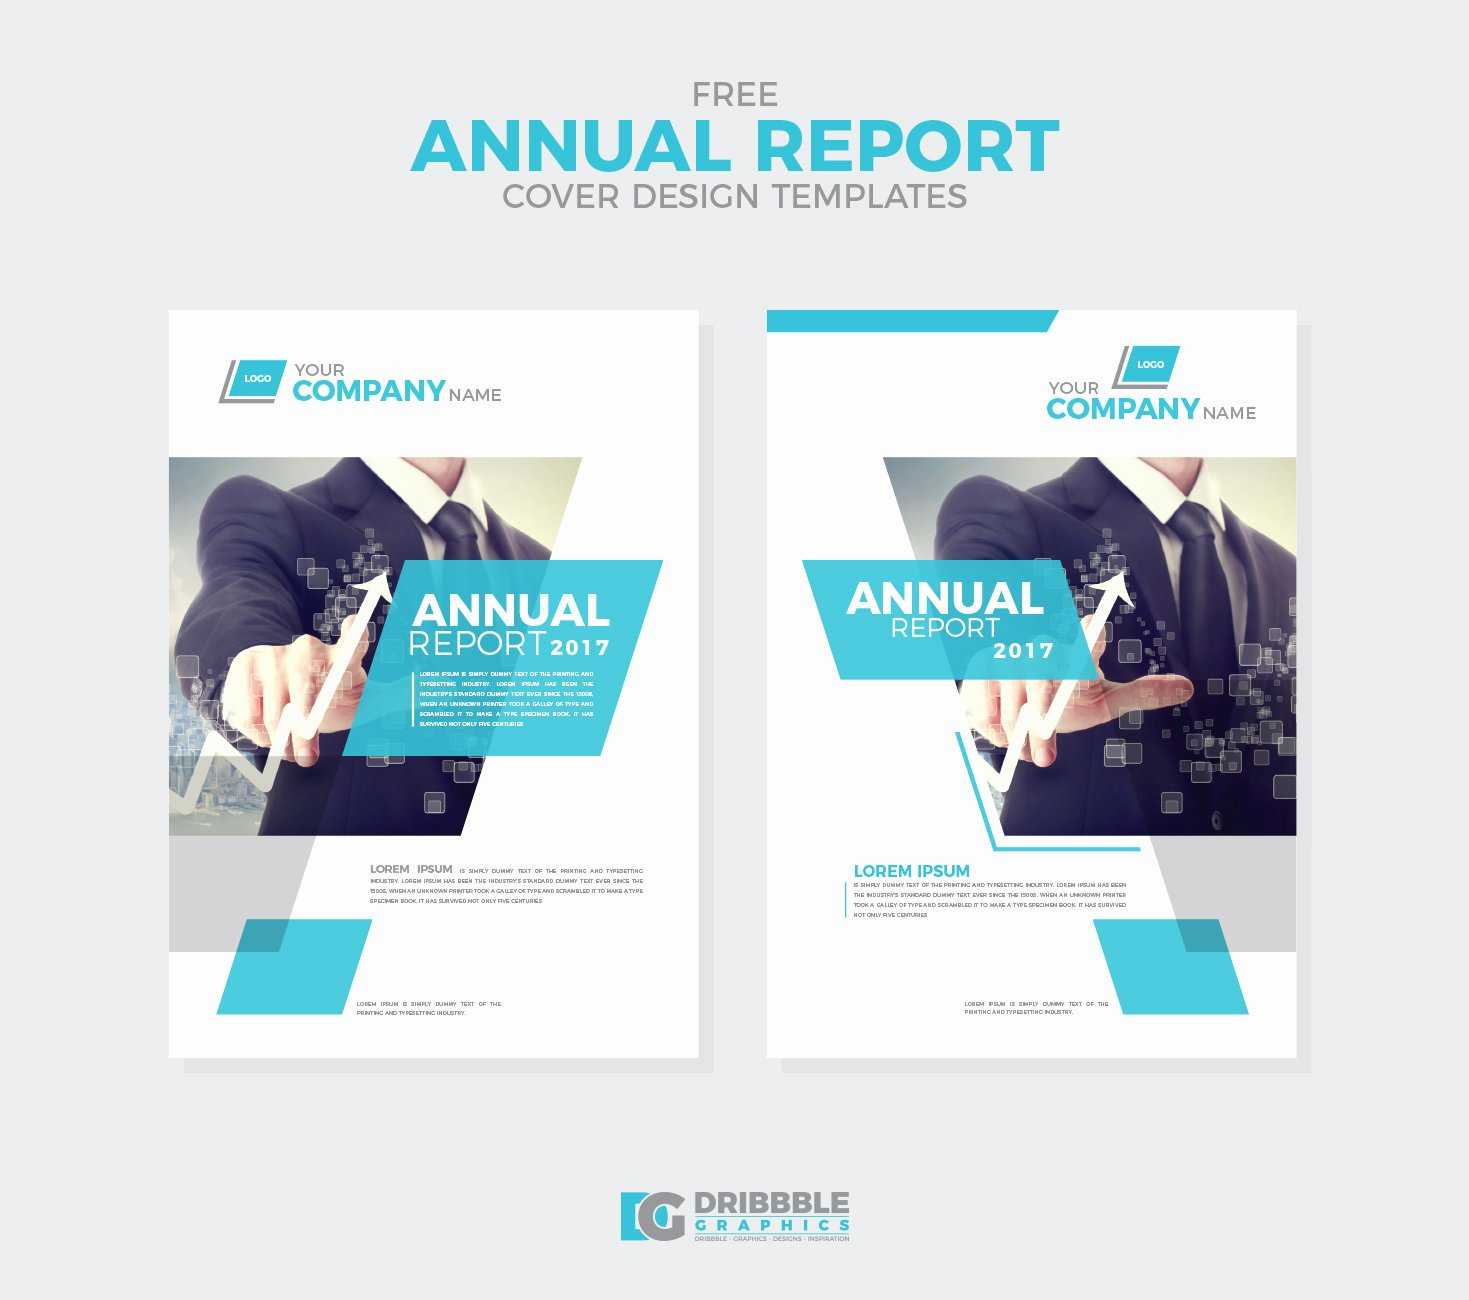 Annual Financial Report Template Elegant Free Annual Report Cover Design Templates